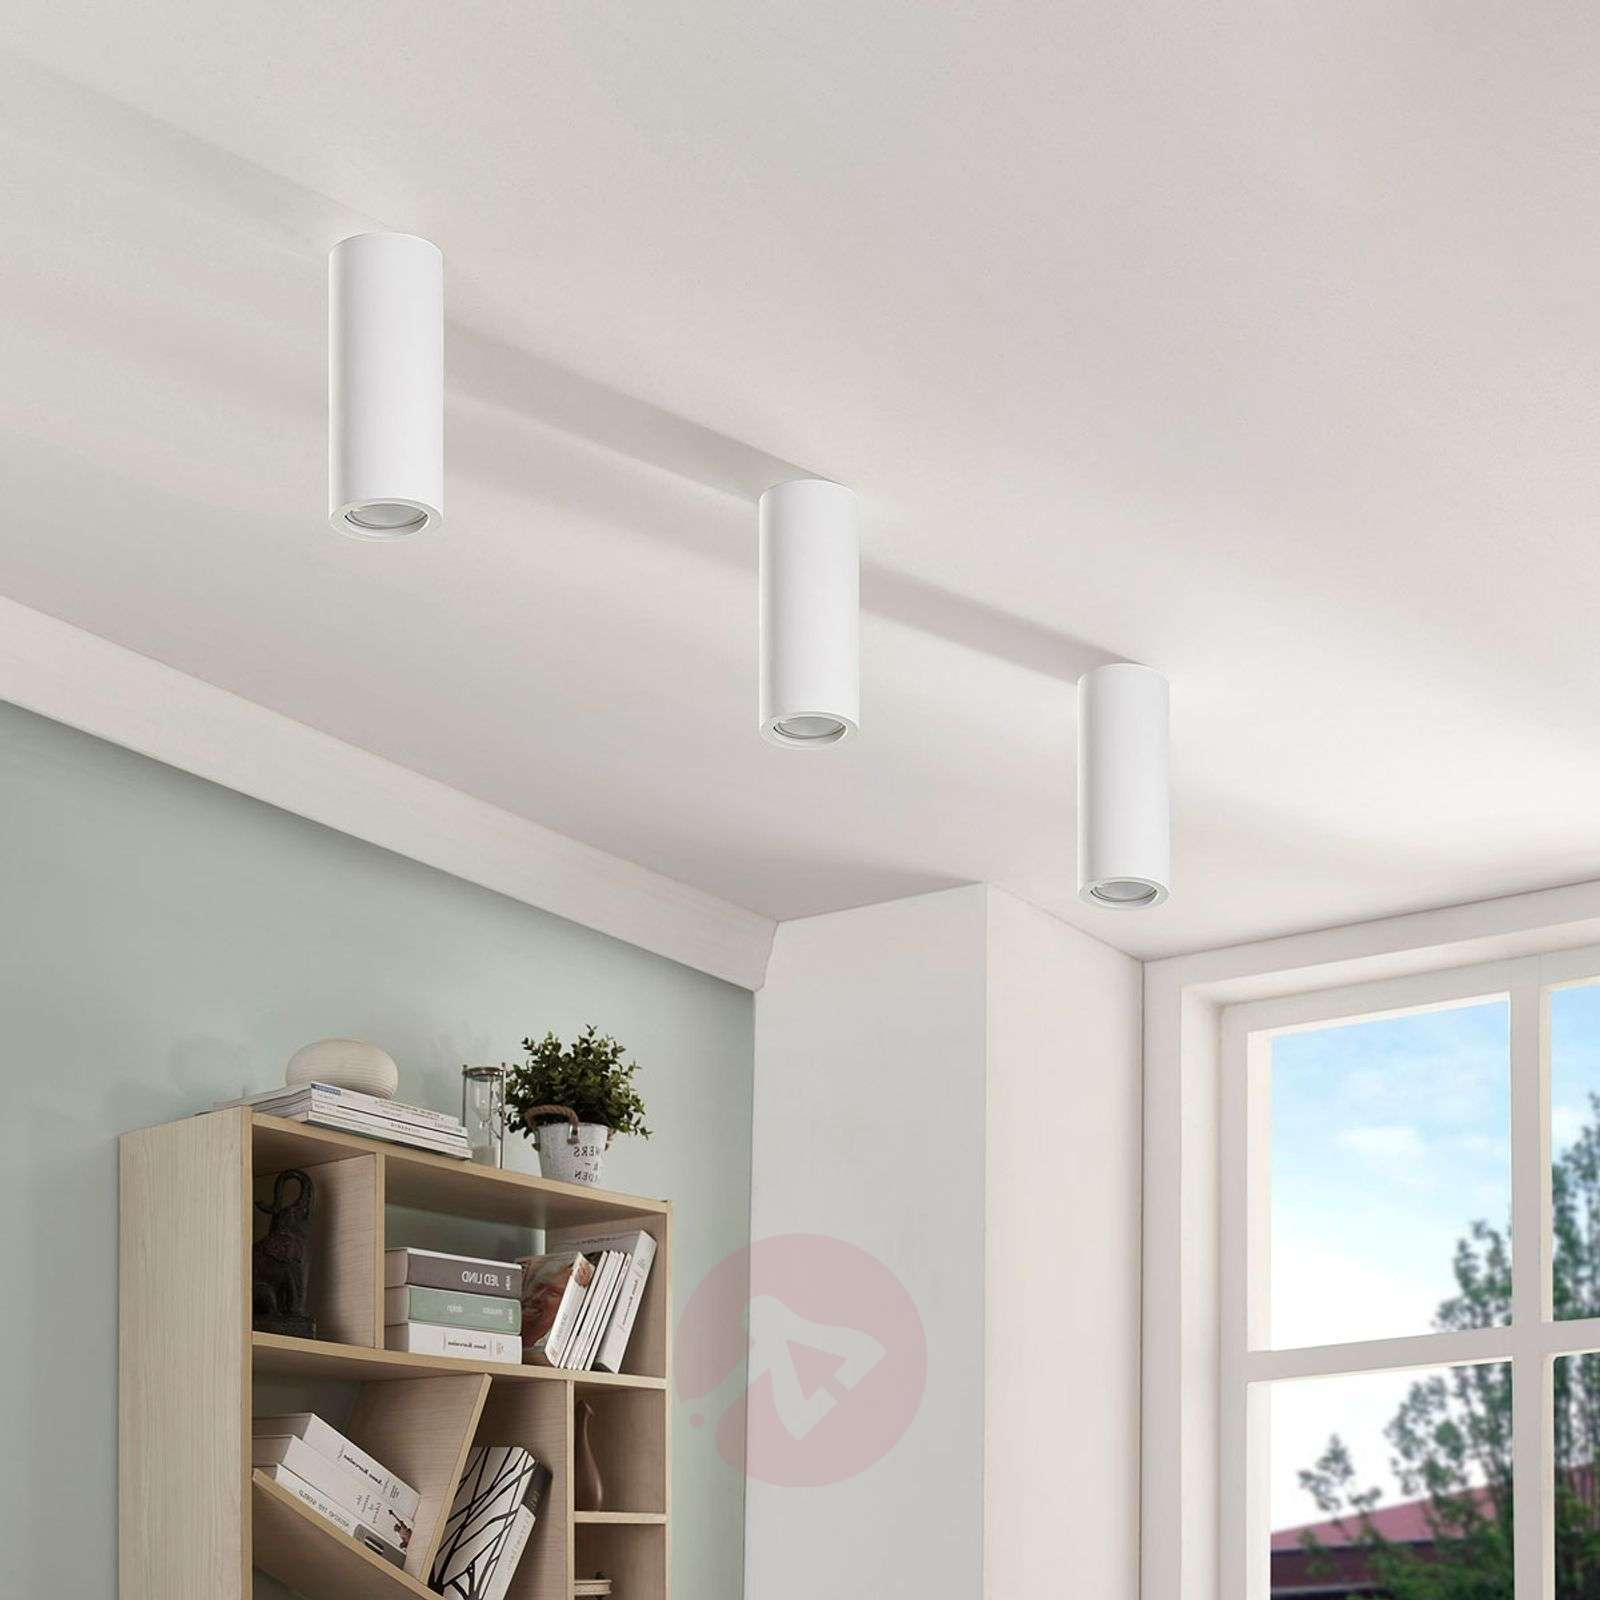 Plaster downlight Annelies with Easydim LED bulb-9621359-01